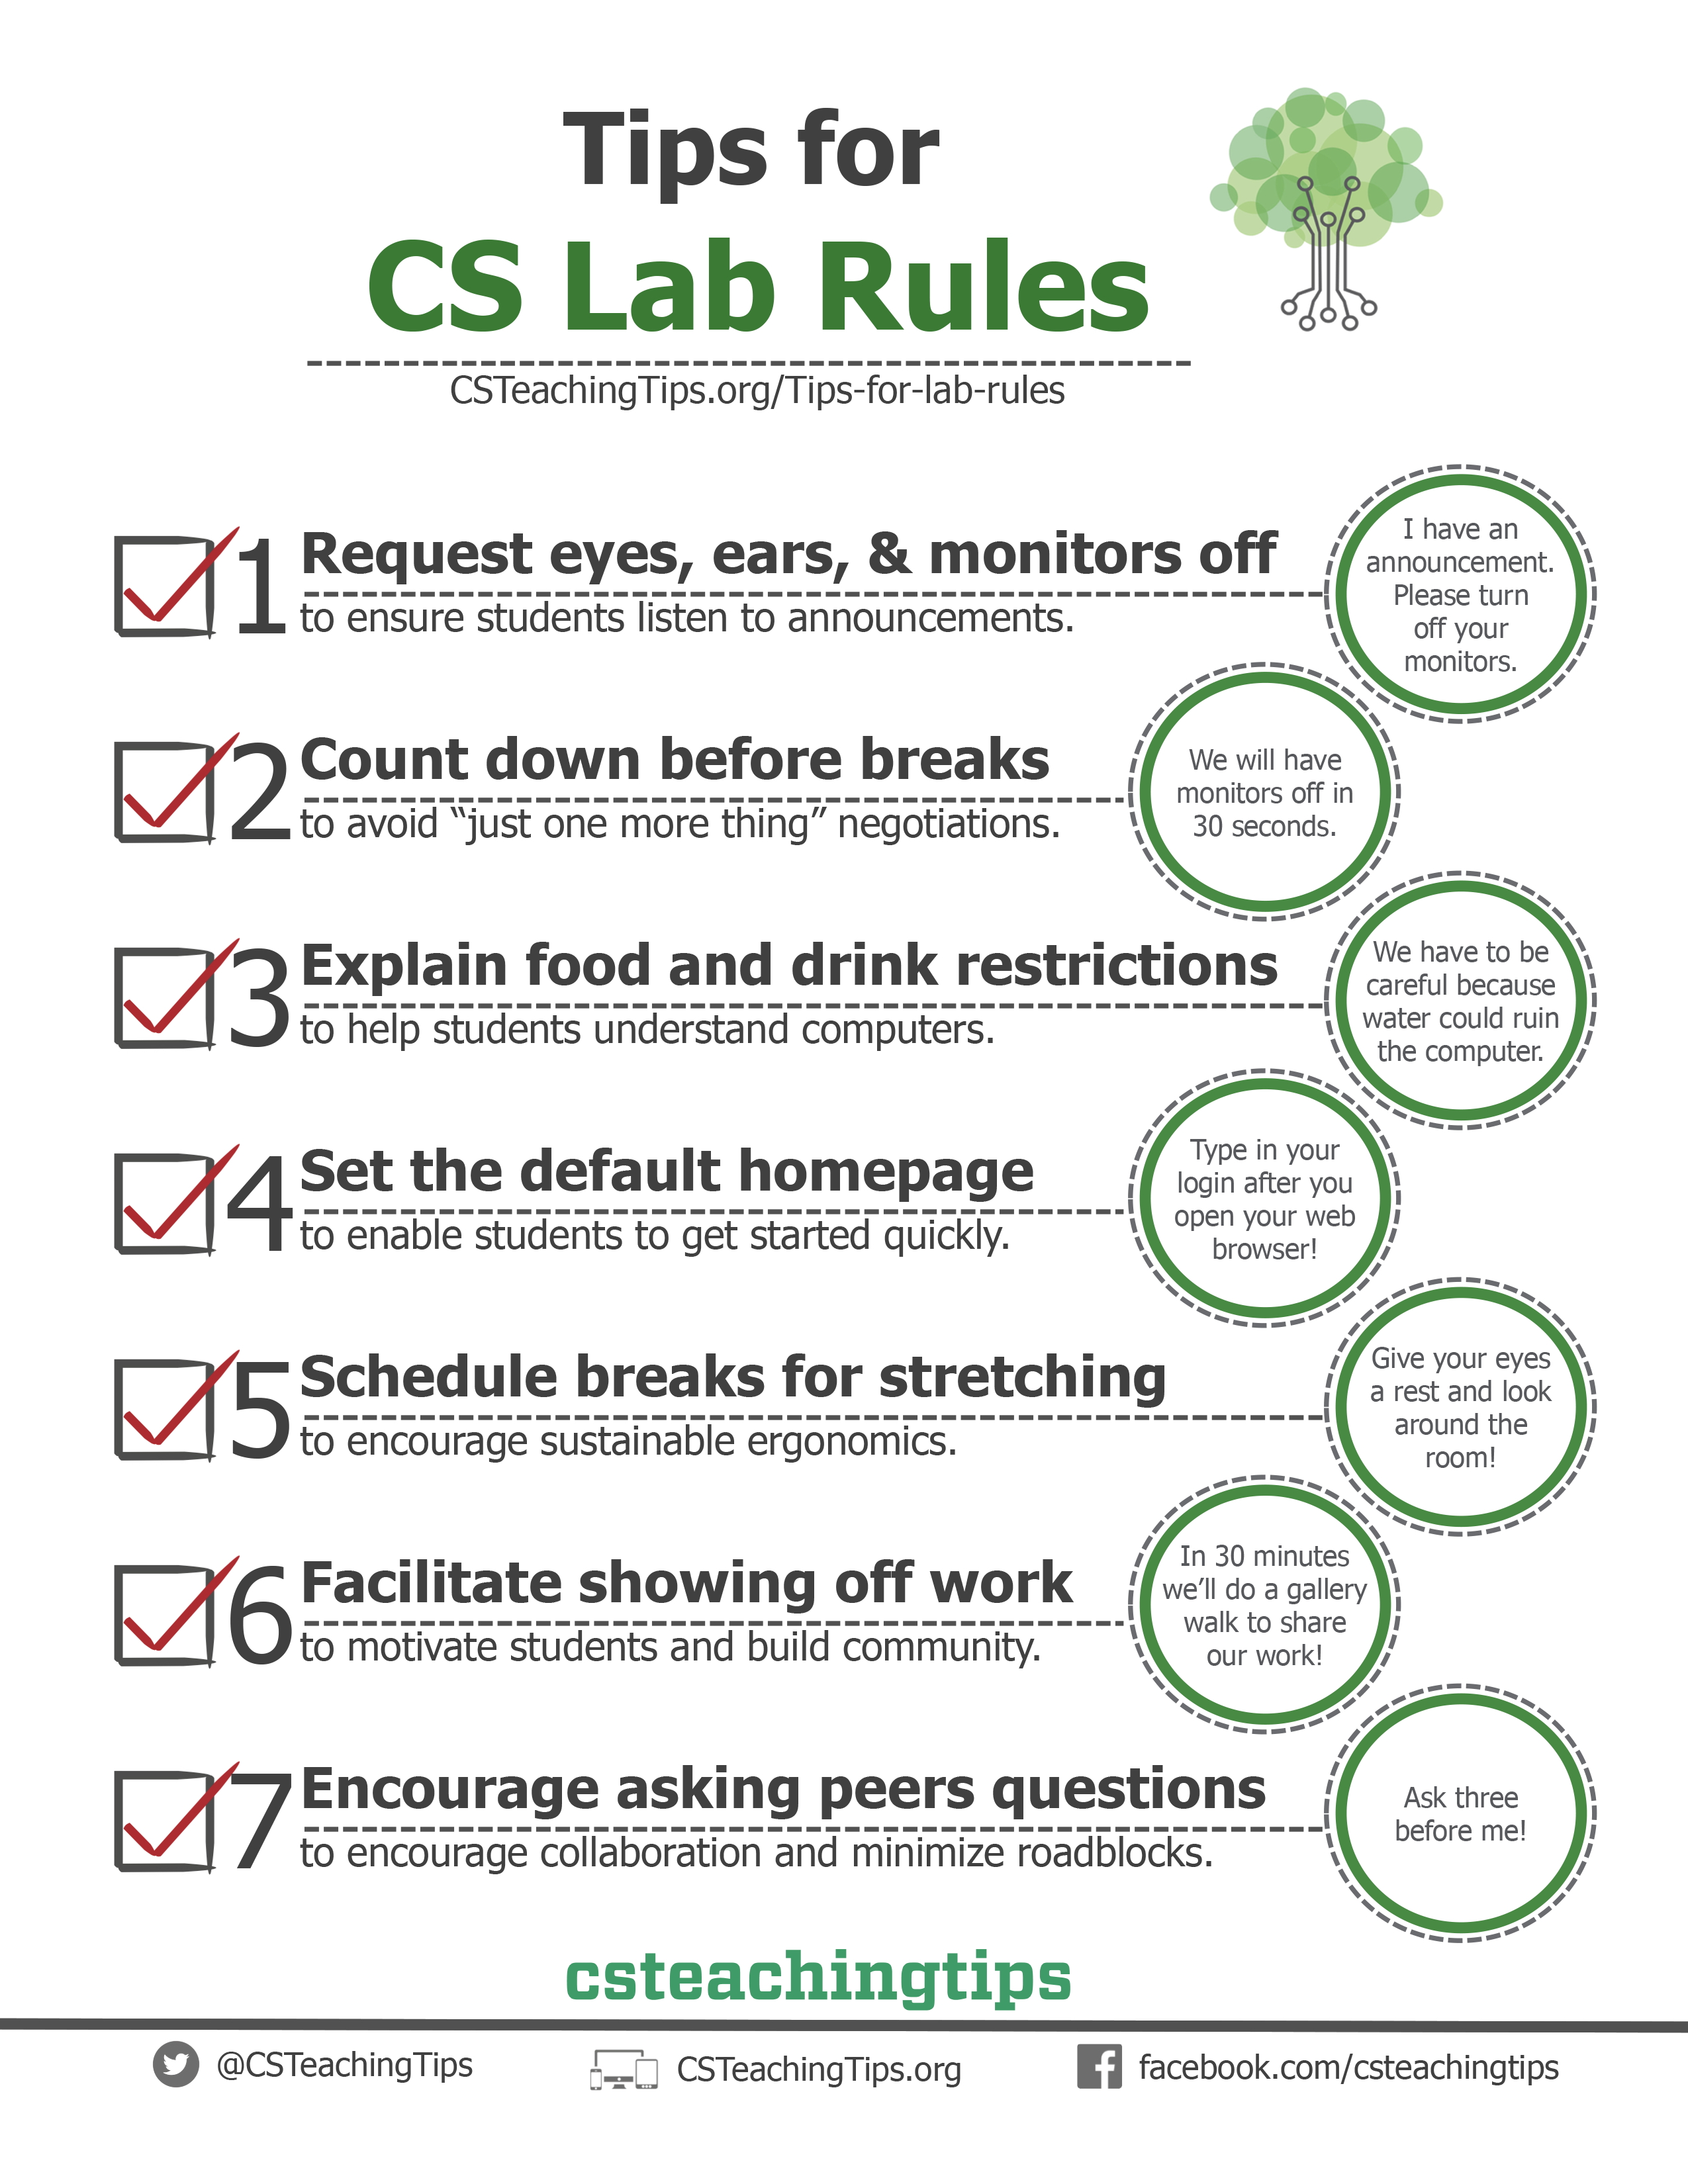 Tips for Computer Lab Rules